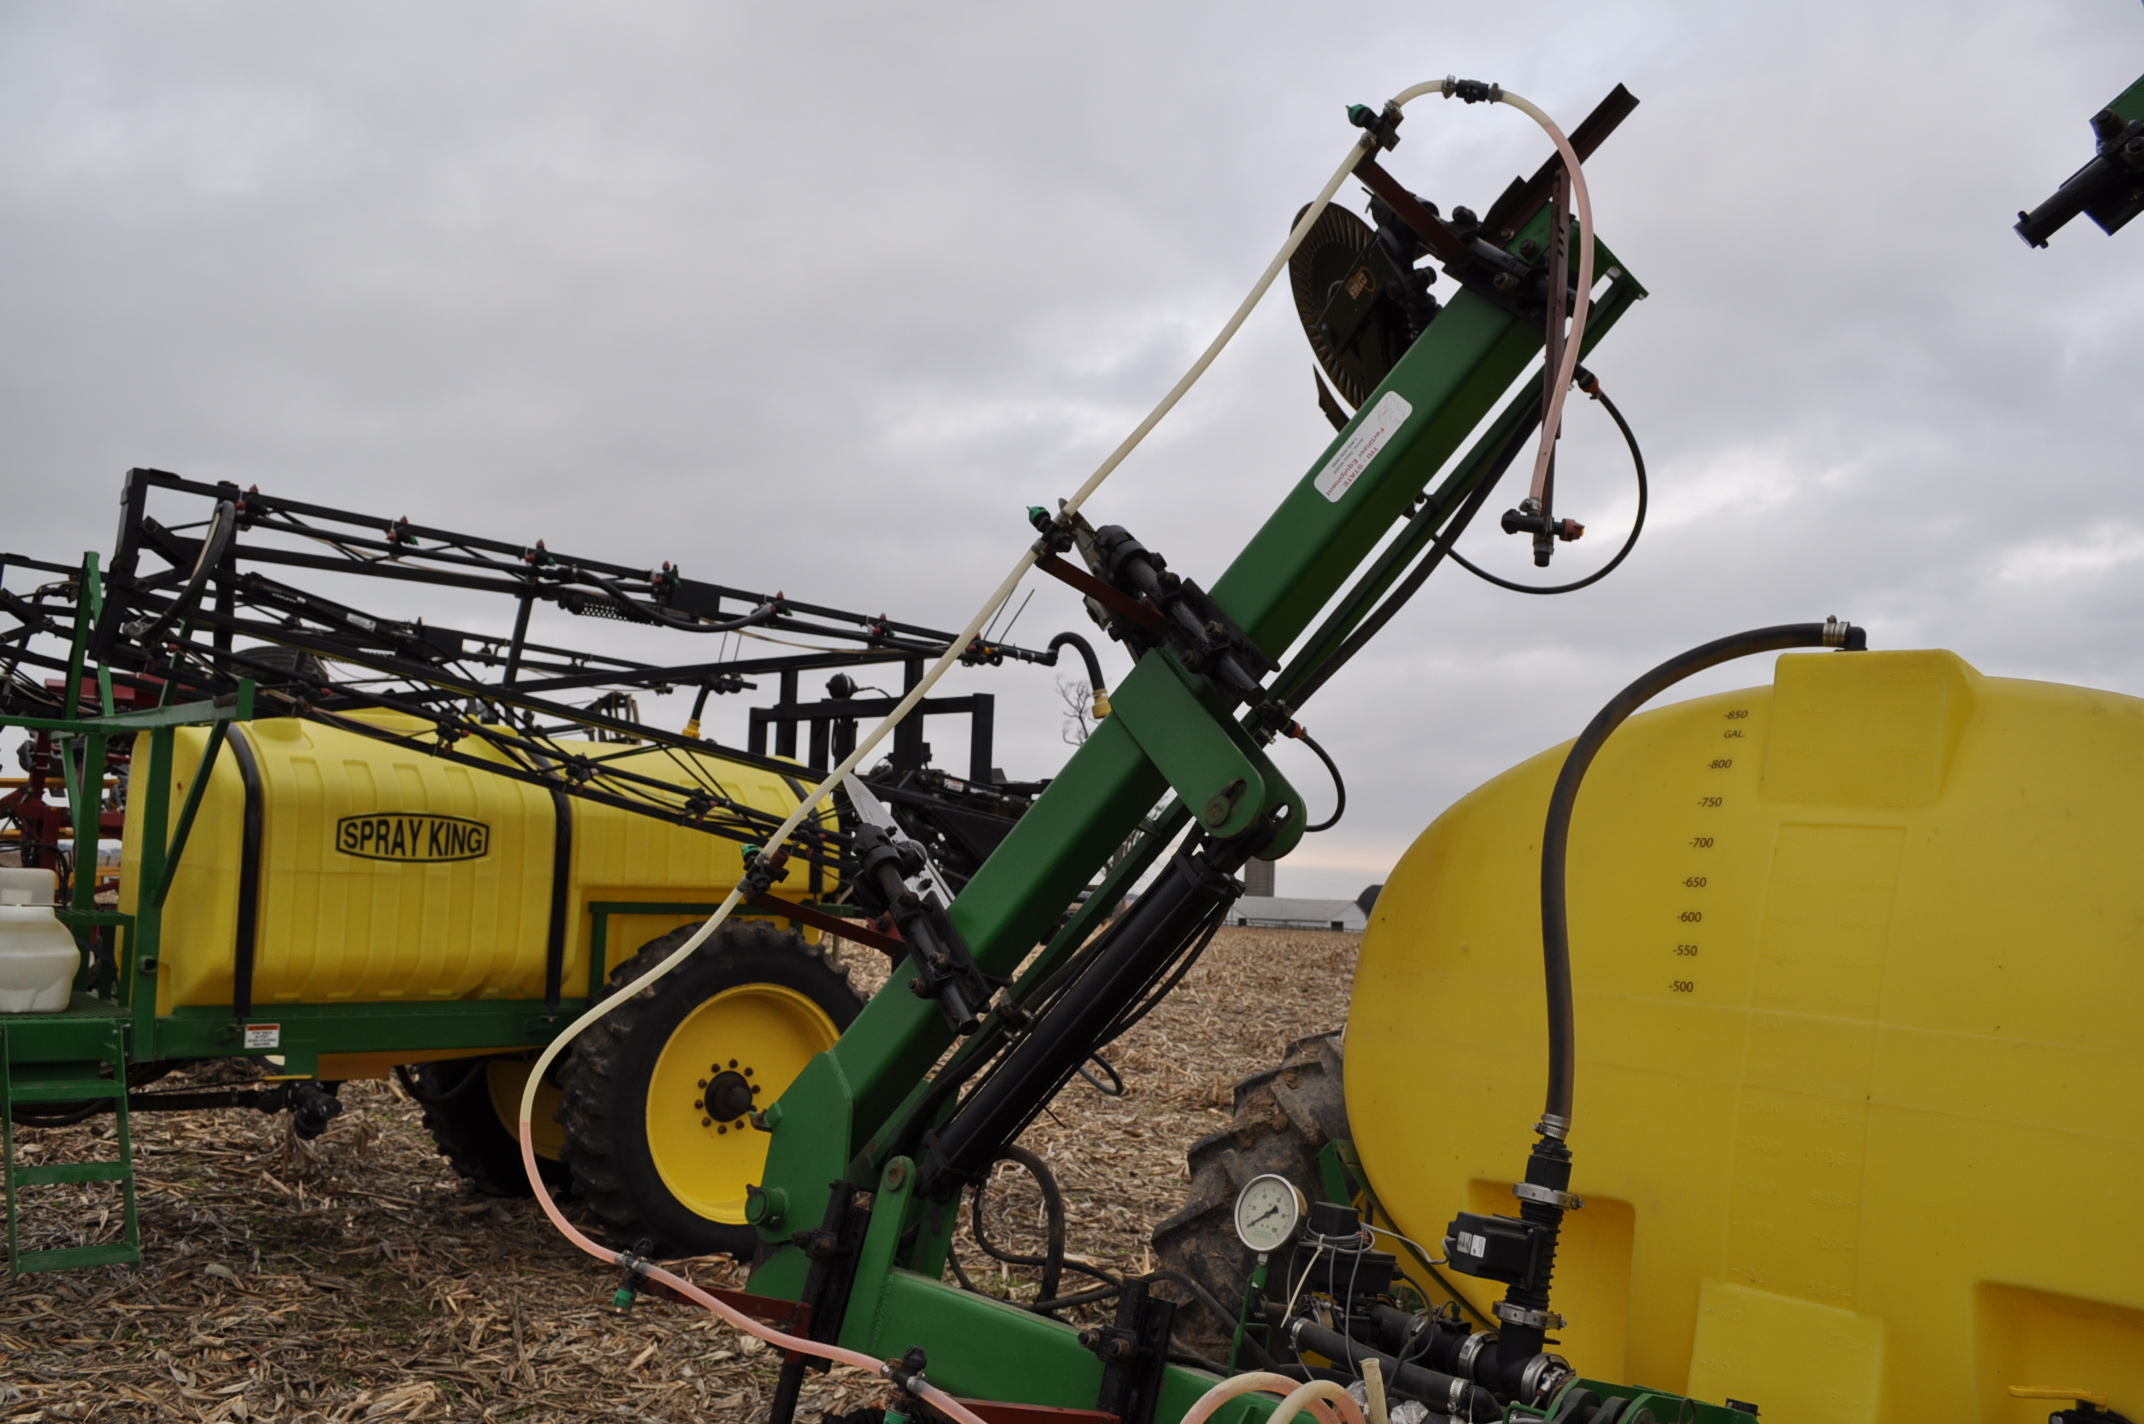 Spray King 28% applicator, 11 coulters w/ knives, 850 poly tank, SS hyd pump, spot spray nozzles - Image 8 of 15